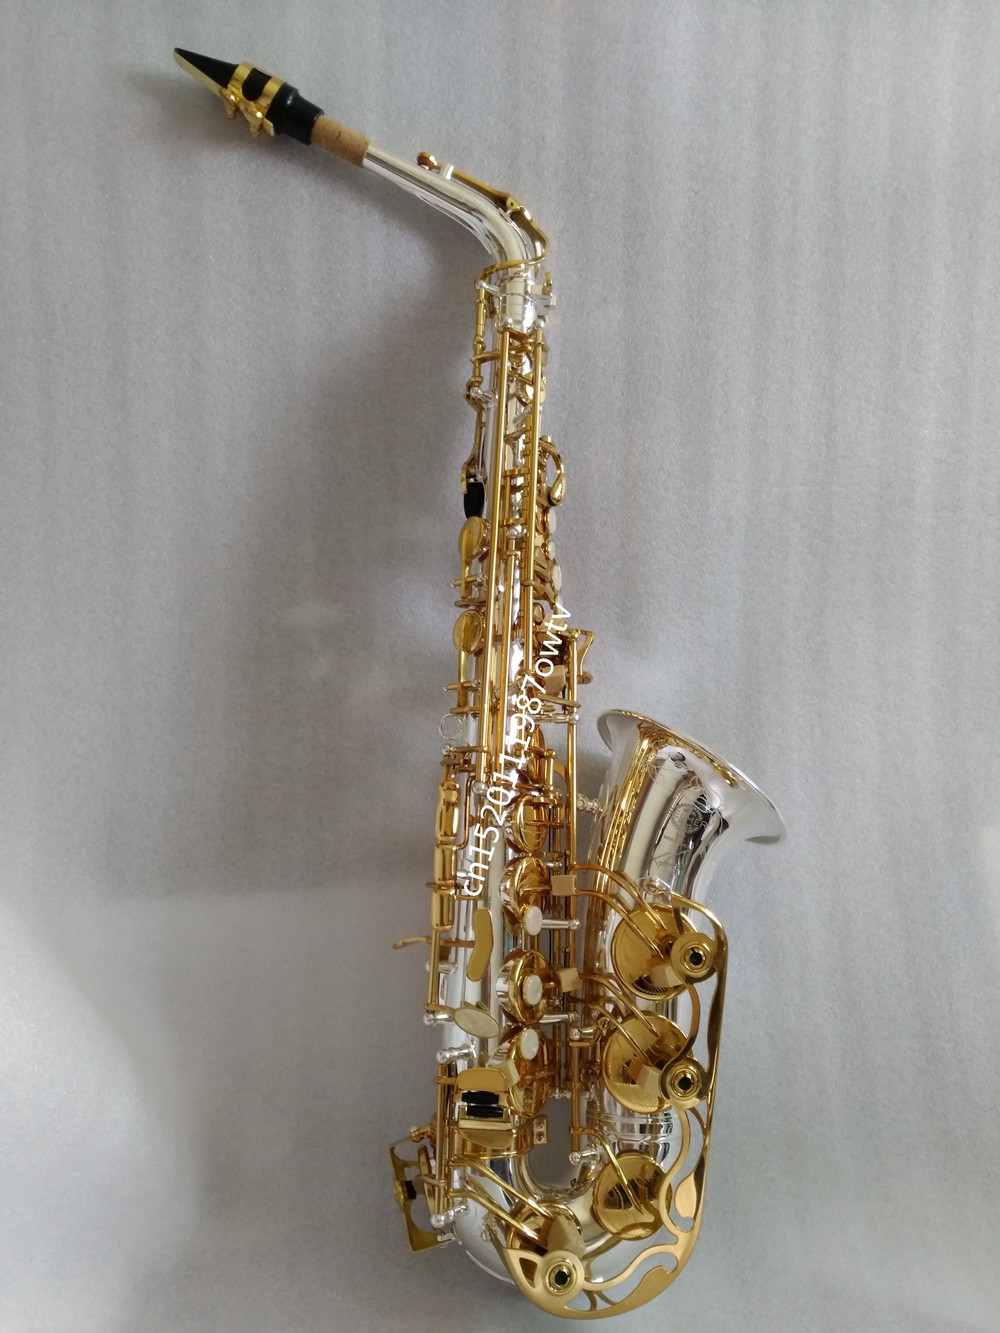 Alto Saxophone France Henri profession Selmer High-Pitch E Sax Super Action 54 Series II Silver Gold key Plating Surface alto saxophone selmer 54 brass silver gold key e flat musical instruments saxophone with cleaning brush cloth gloves cork strap